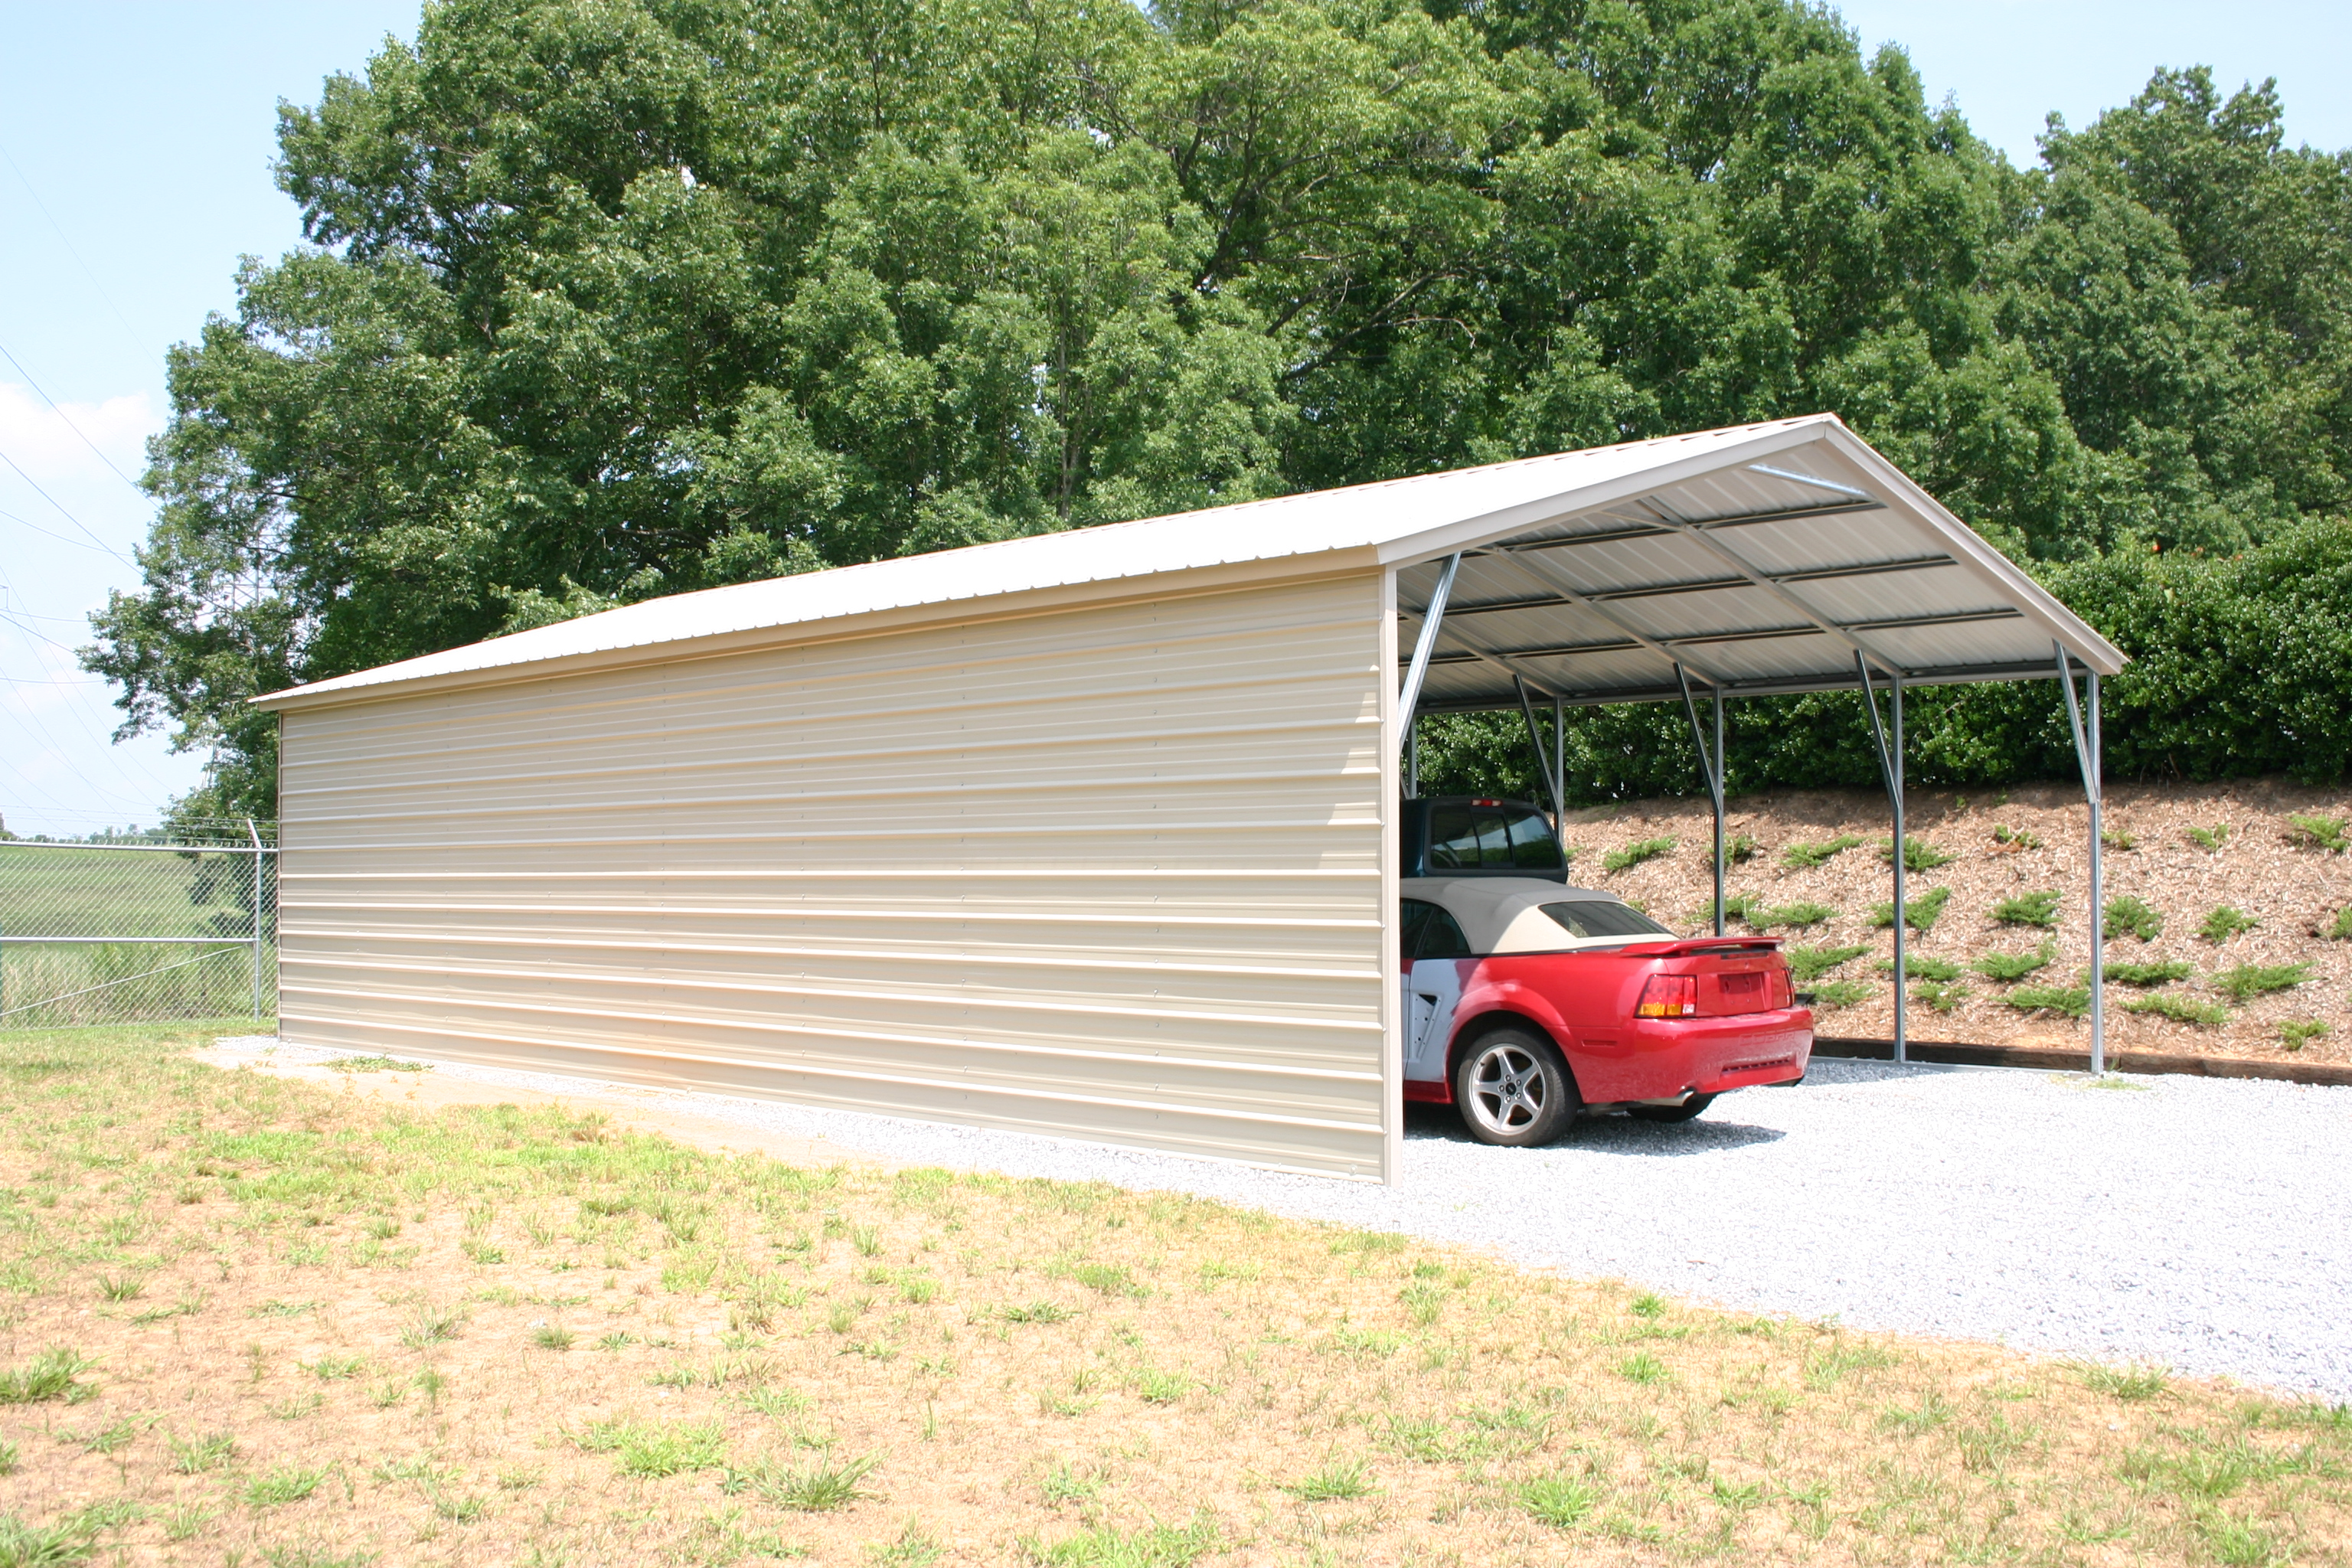 metal carports dickson tn dickson tennessee carports. Black Bedroom Furniture Sets. Home Design Ideas